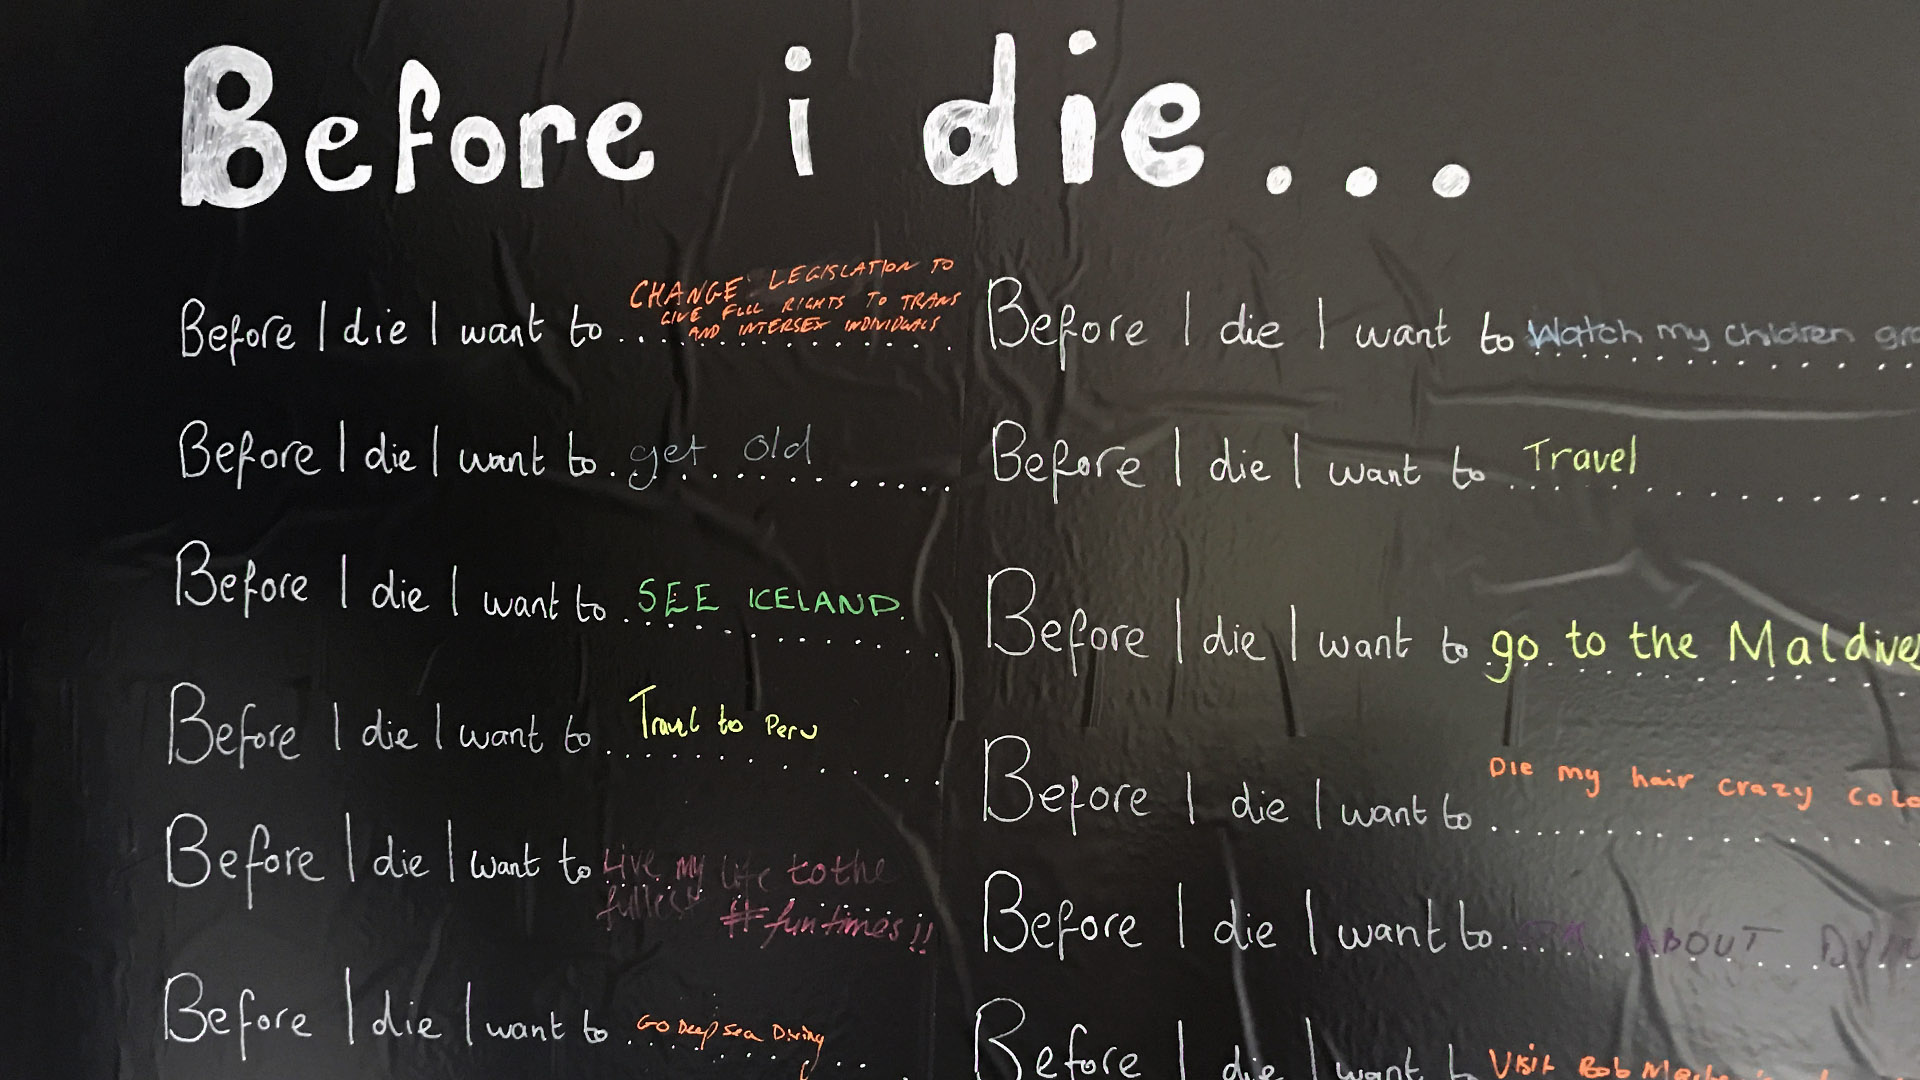 'before I die' blackboard